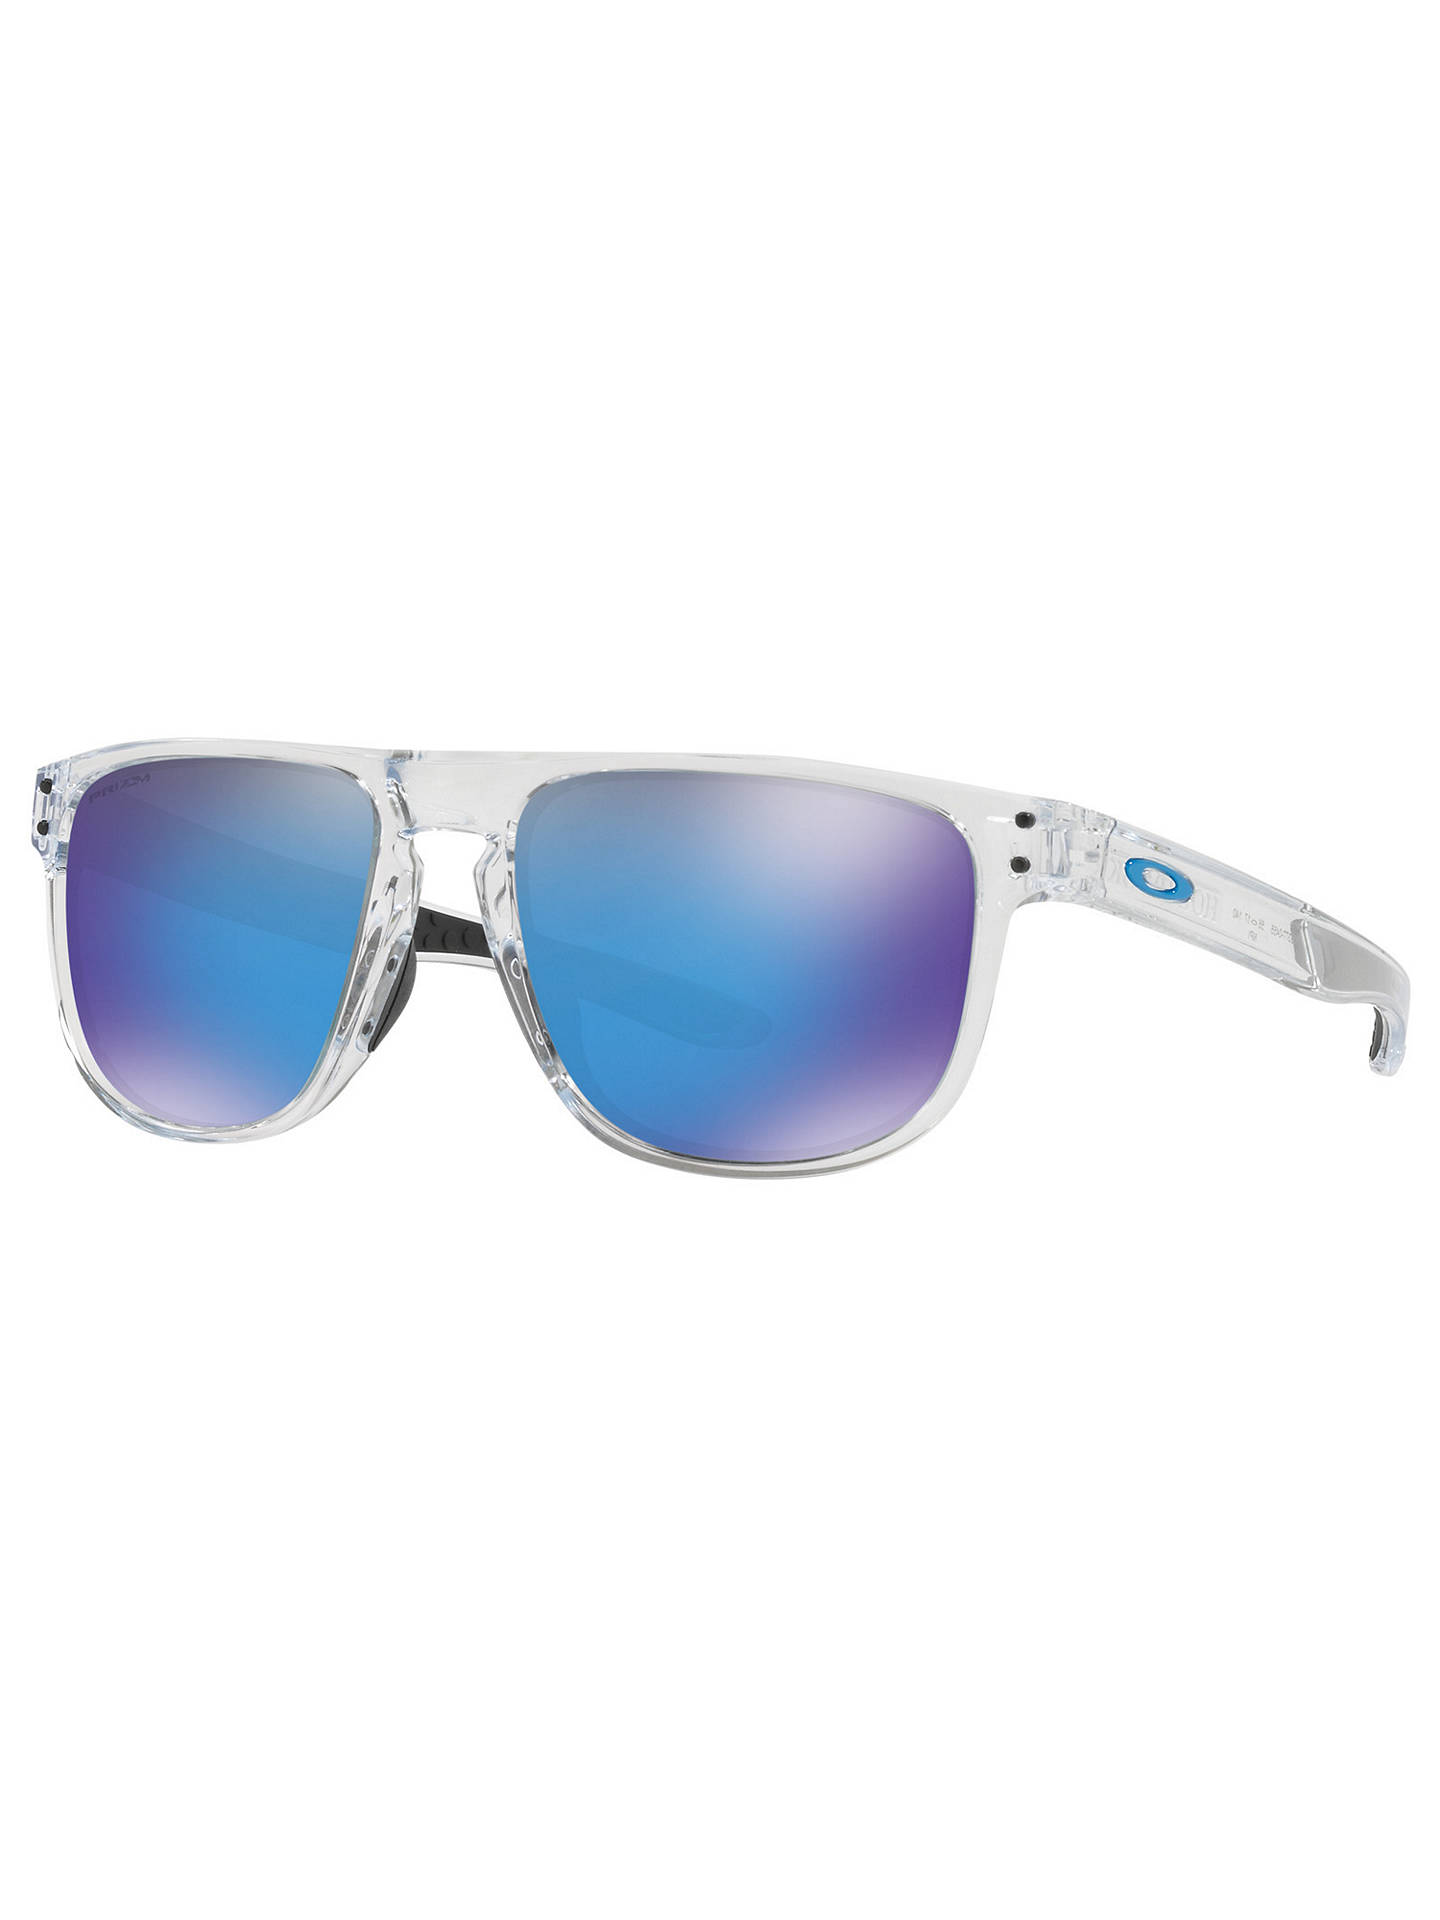 dccc6c11dfd6 Buy Oakley OO9377 Holbrook Prizm Square Sunglasses